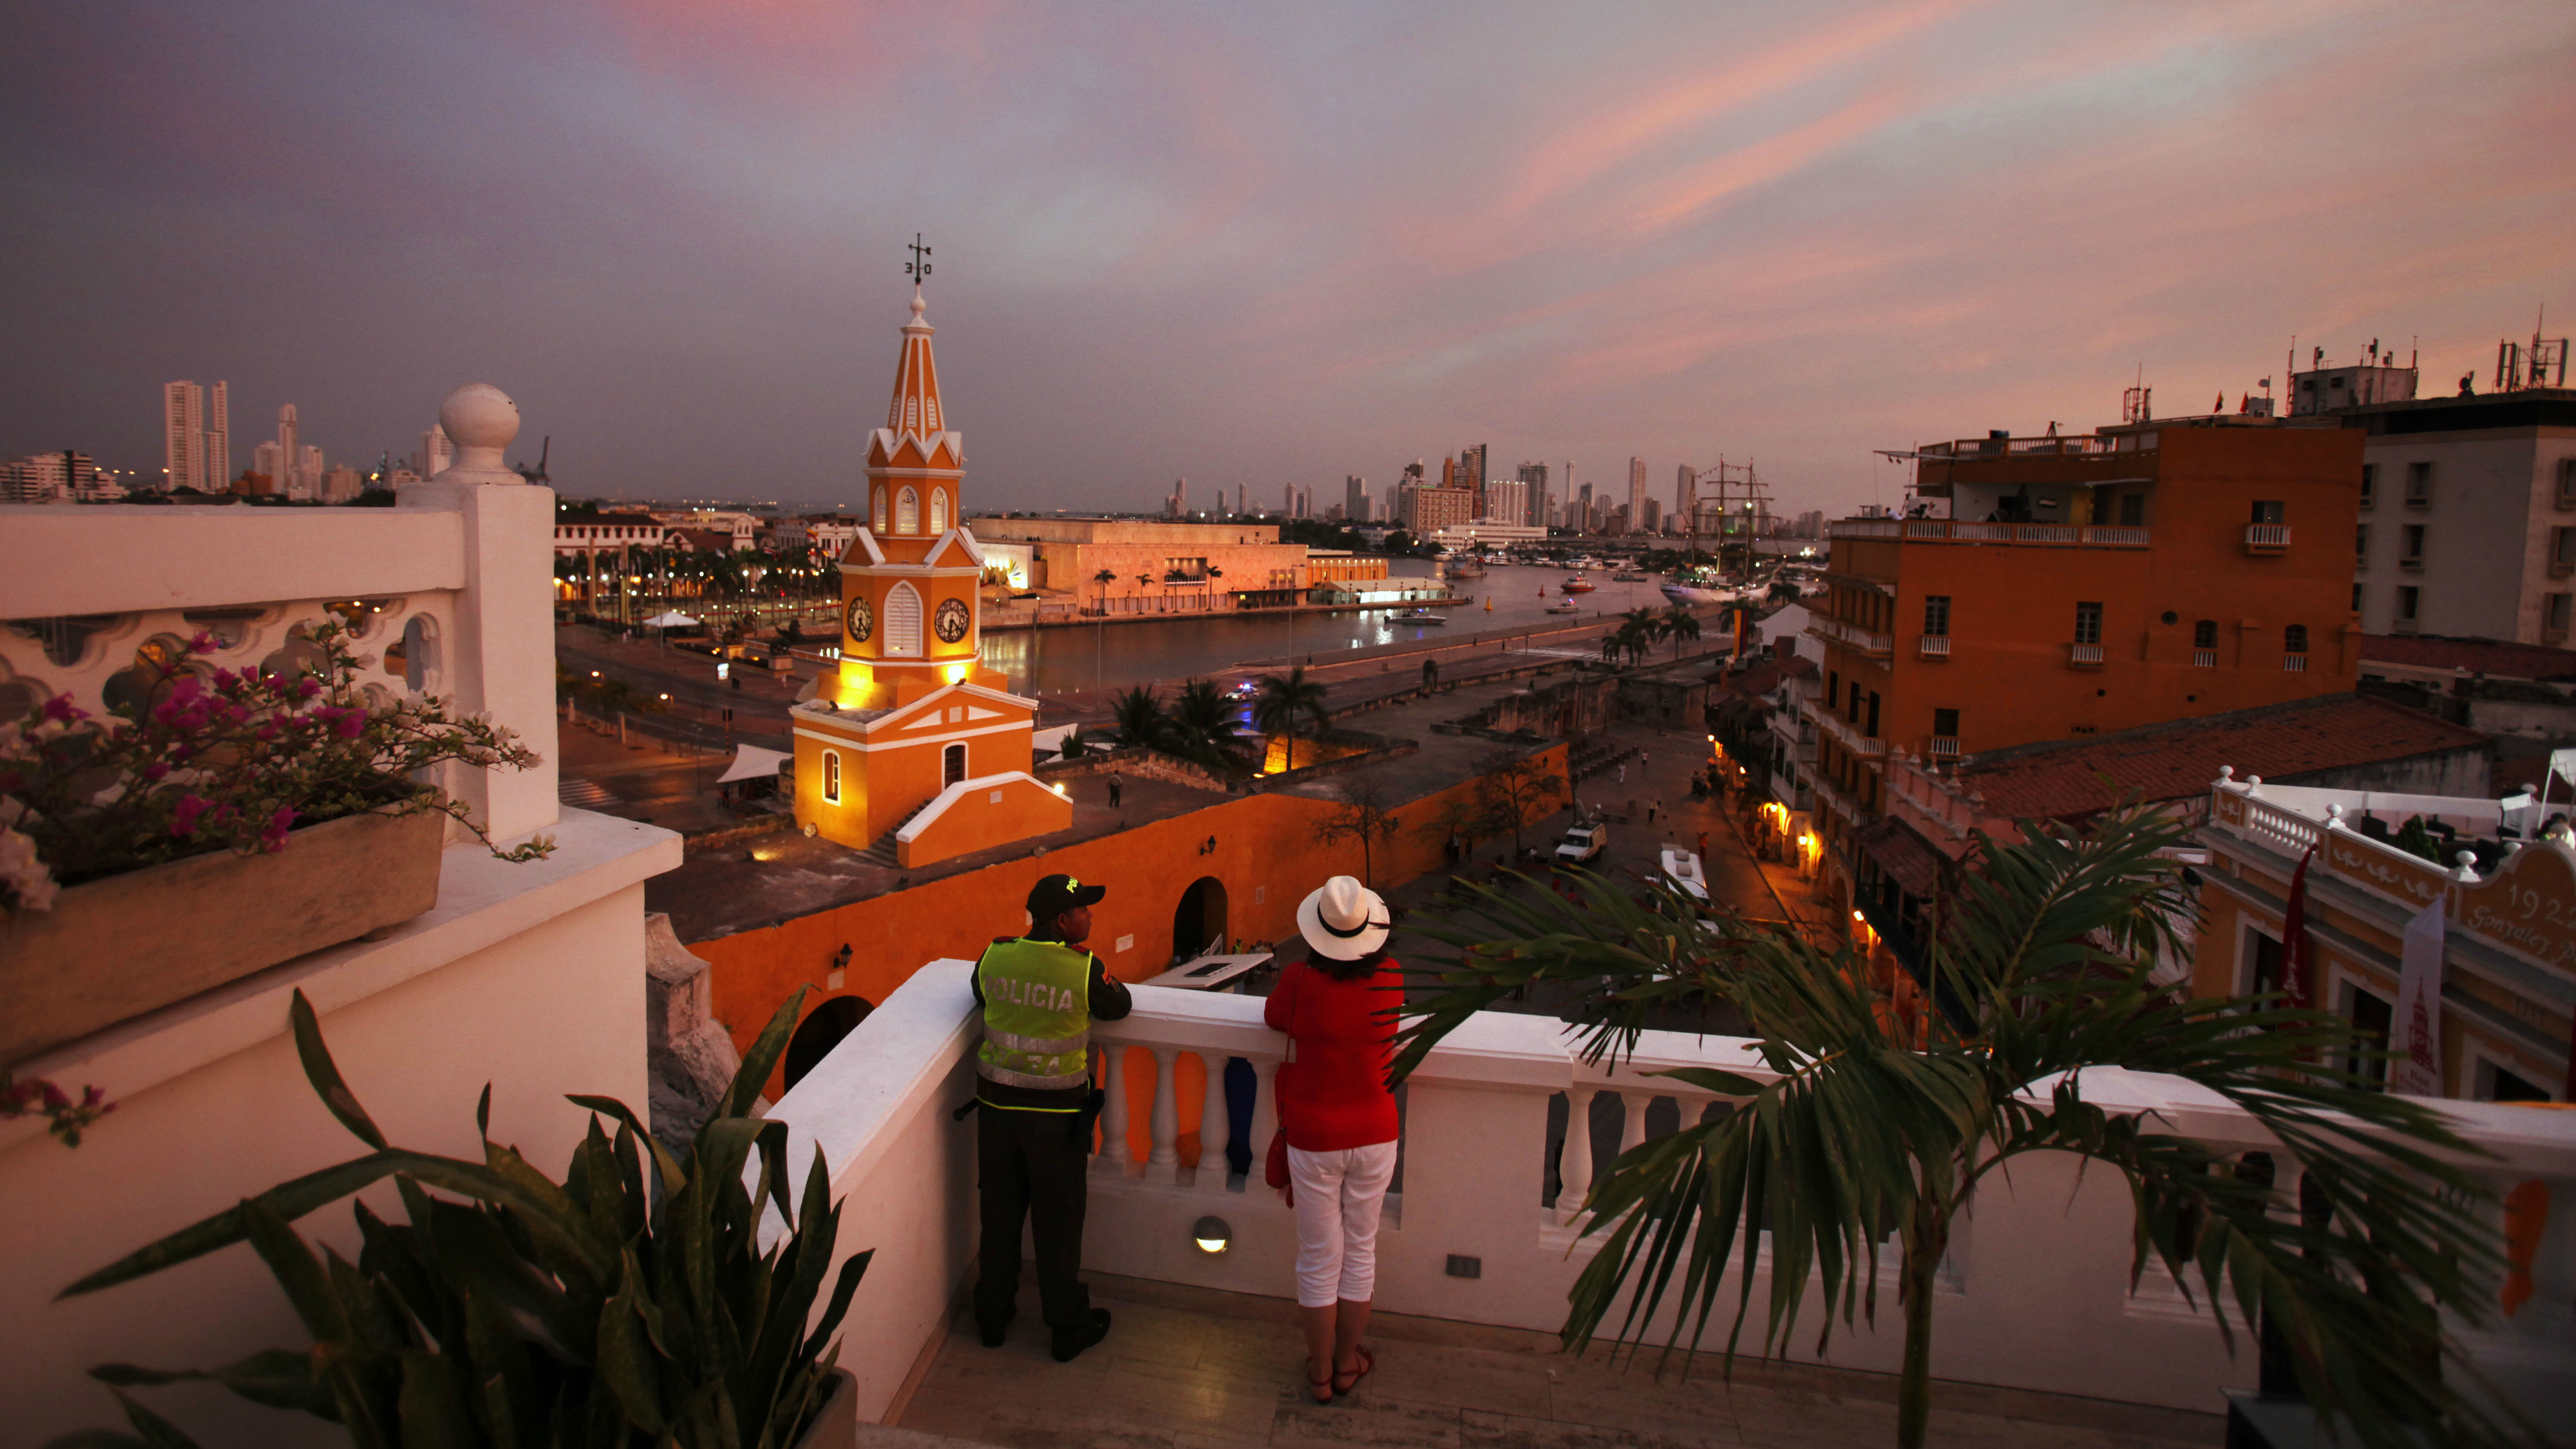 A policeman and a tourist watch the sunset during the Summit of the Americas, being held in the Convention Center, the white building at center, being attended by U.S. Secretary of State Hillary Rodham Clinton and President Barack Obama, in Cartagena, Colombia, on Saturday, April 14, 2012. (AP Photo/Jacquelyn Martin, Pool)